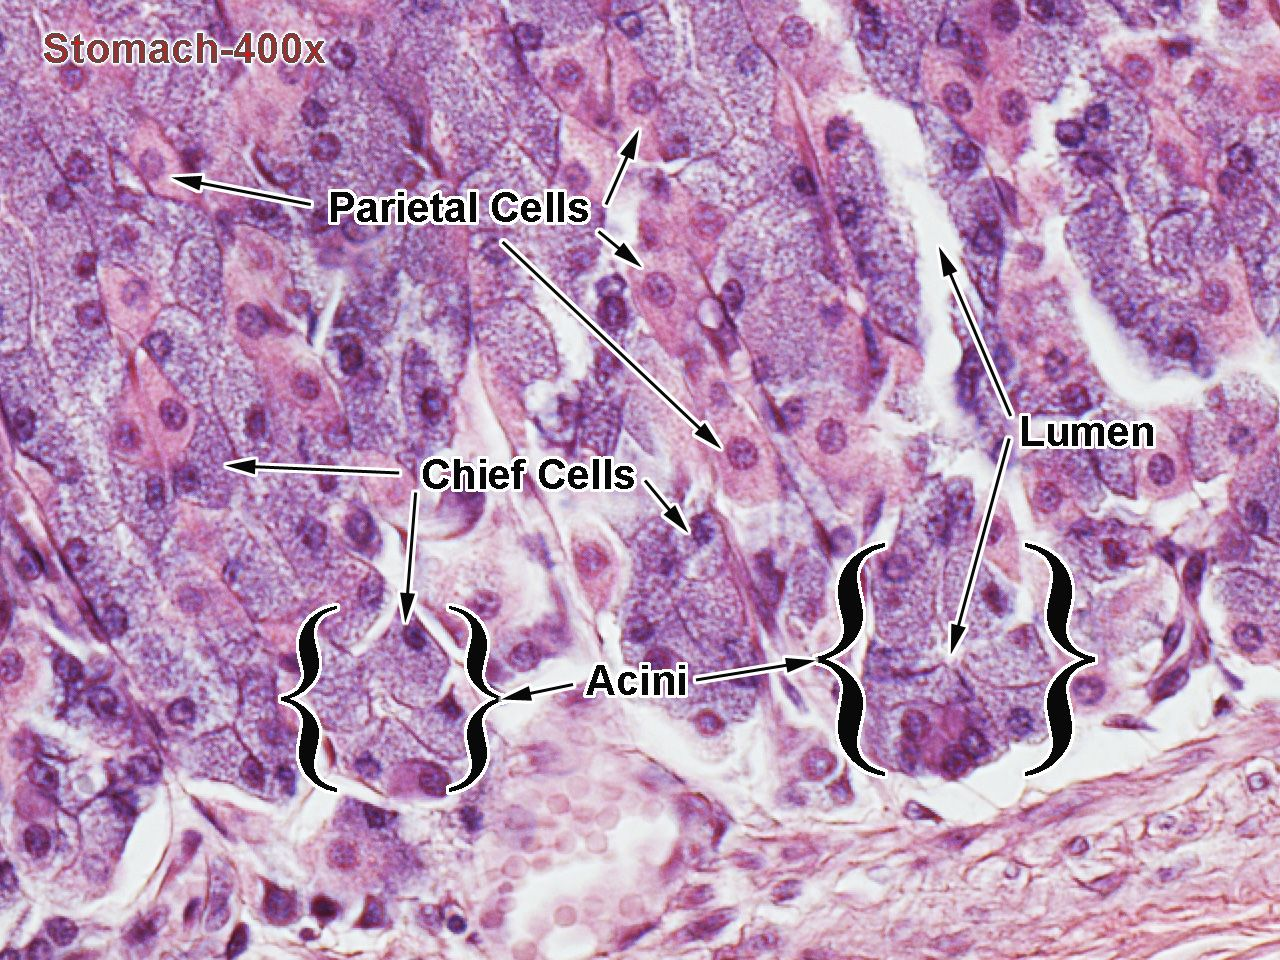 Gastric Glands 400x All Labels Copy 960